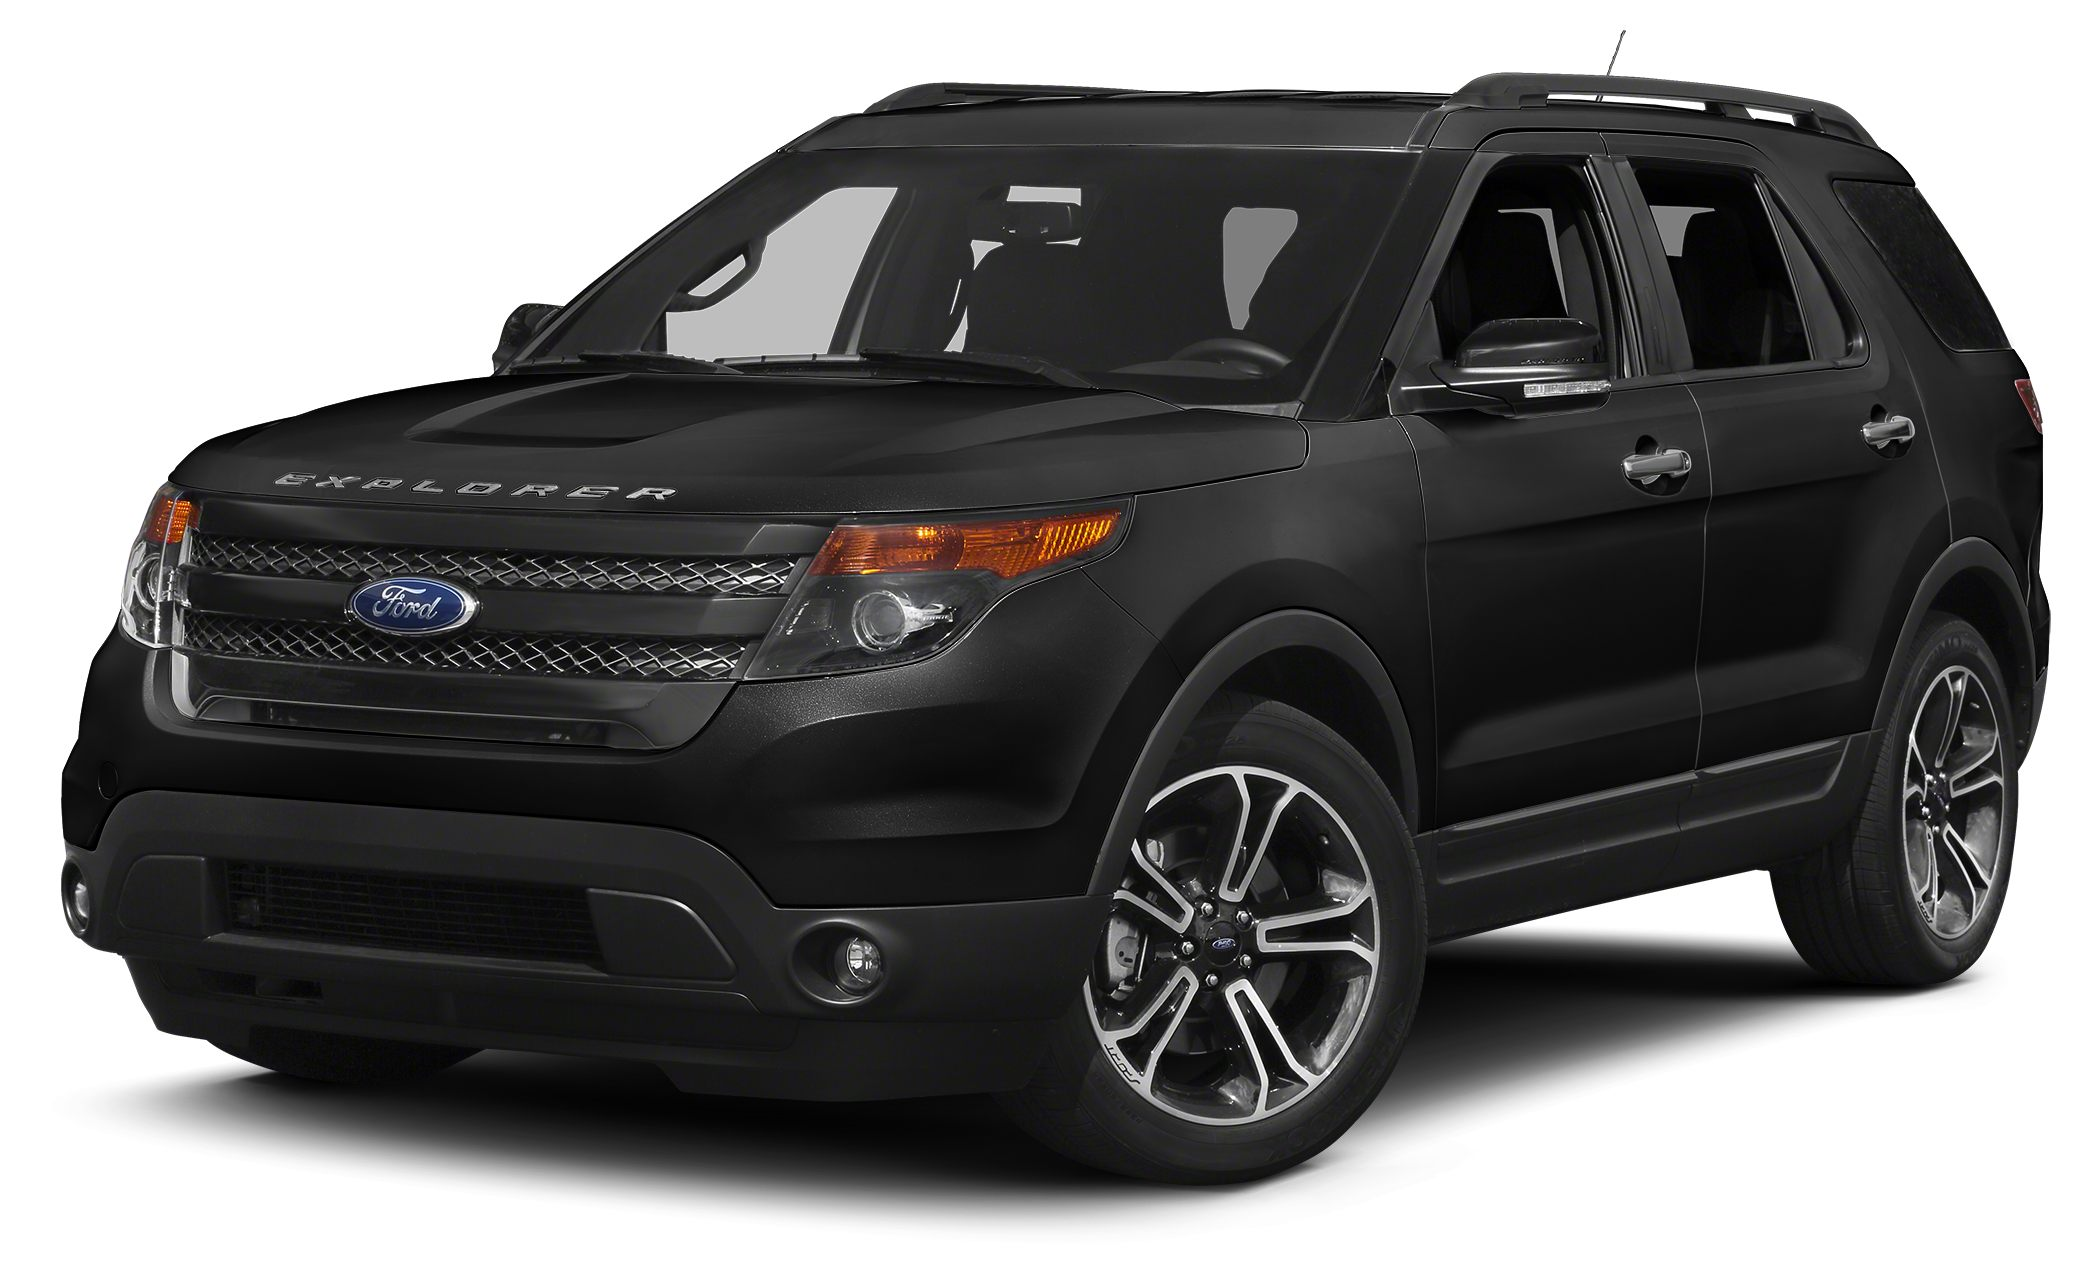 2013 Ford Explorer Sport Ford Certified Spotless 1800 below NADA Retail Entertainment System